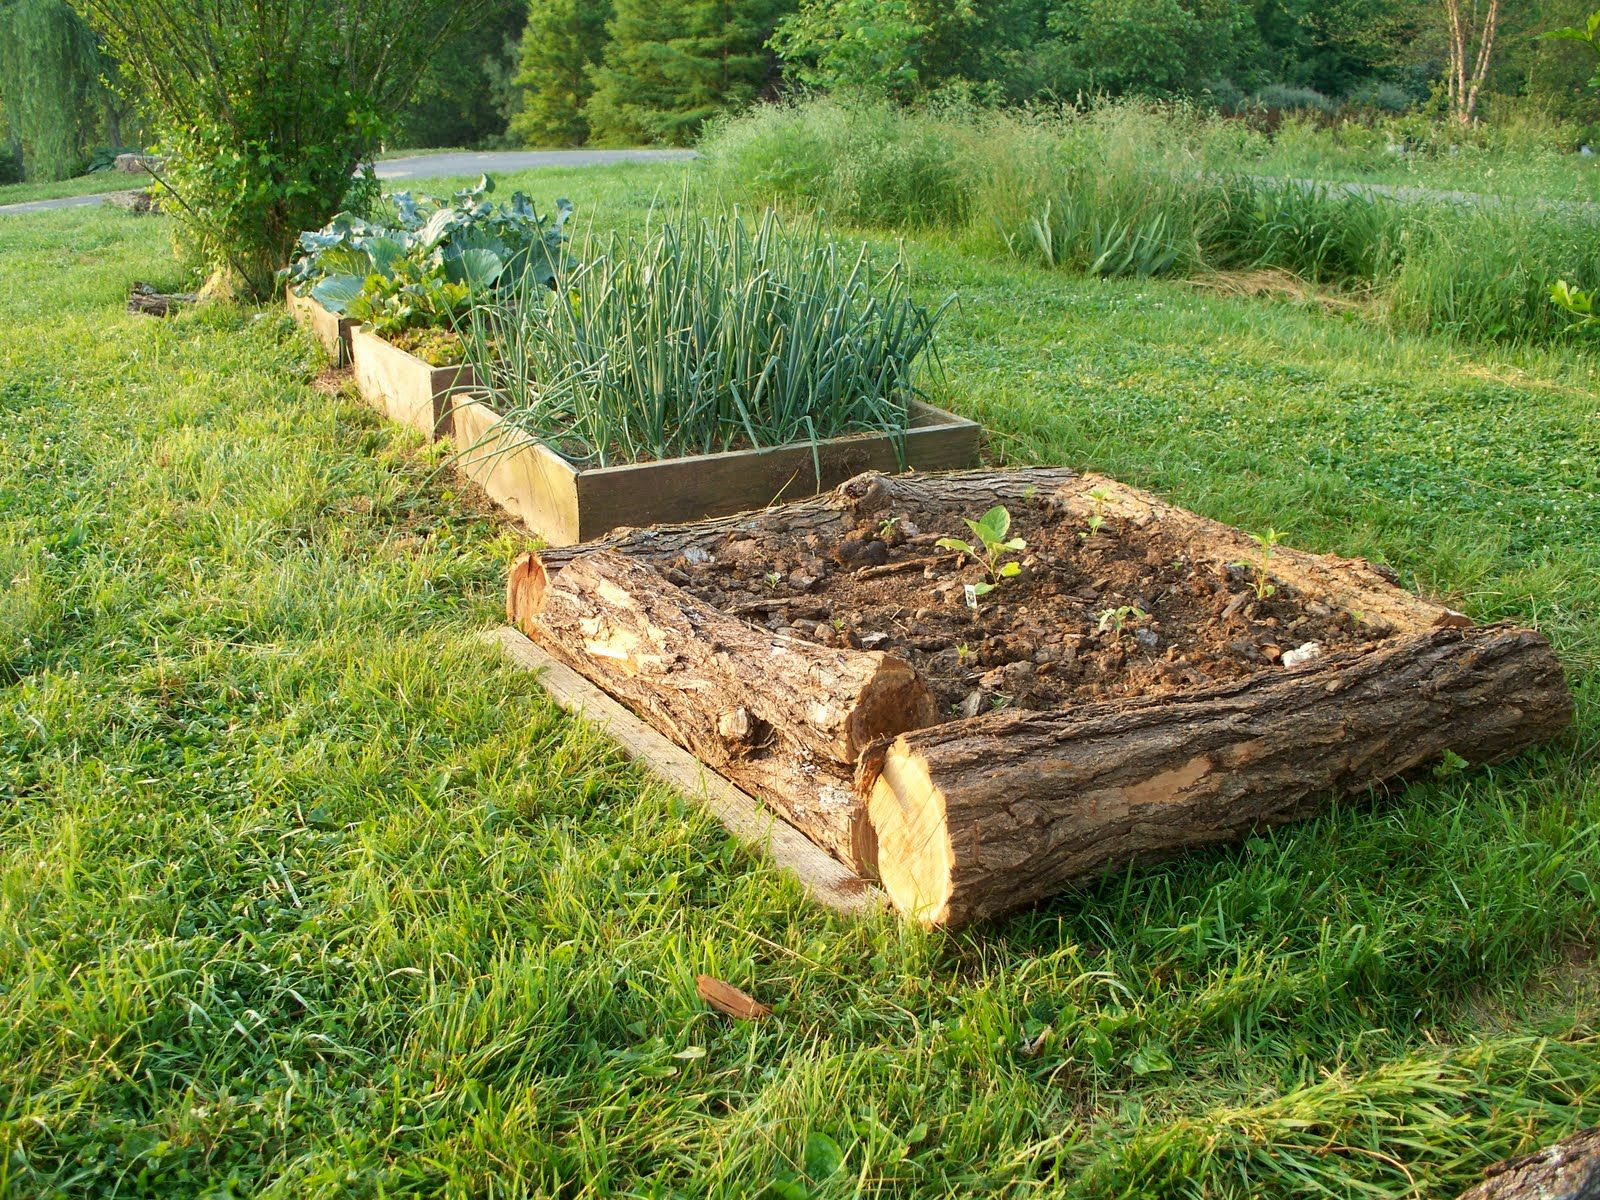 Rough Hewn Logs Provide Walls For A Raised Bed While Blending In With The Natural Landscape